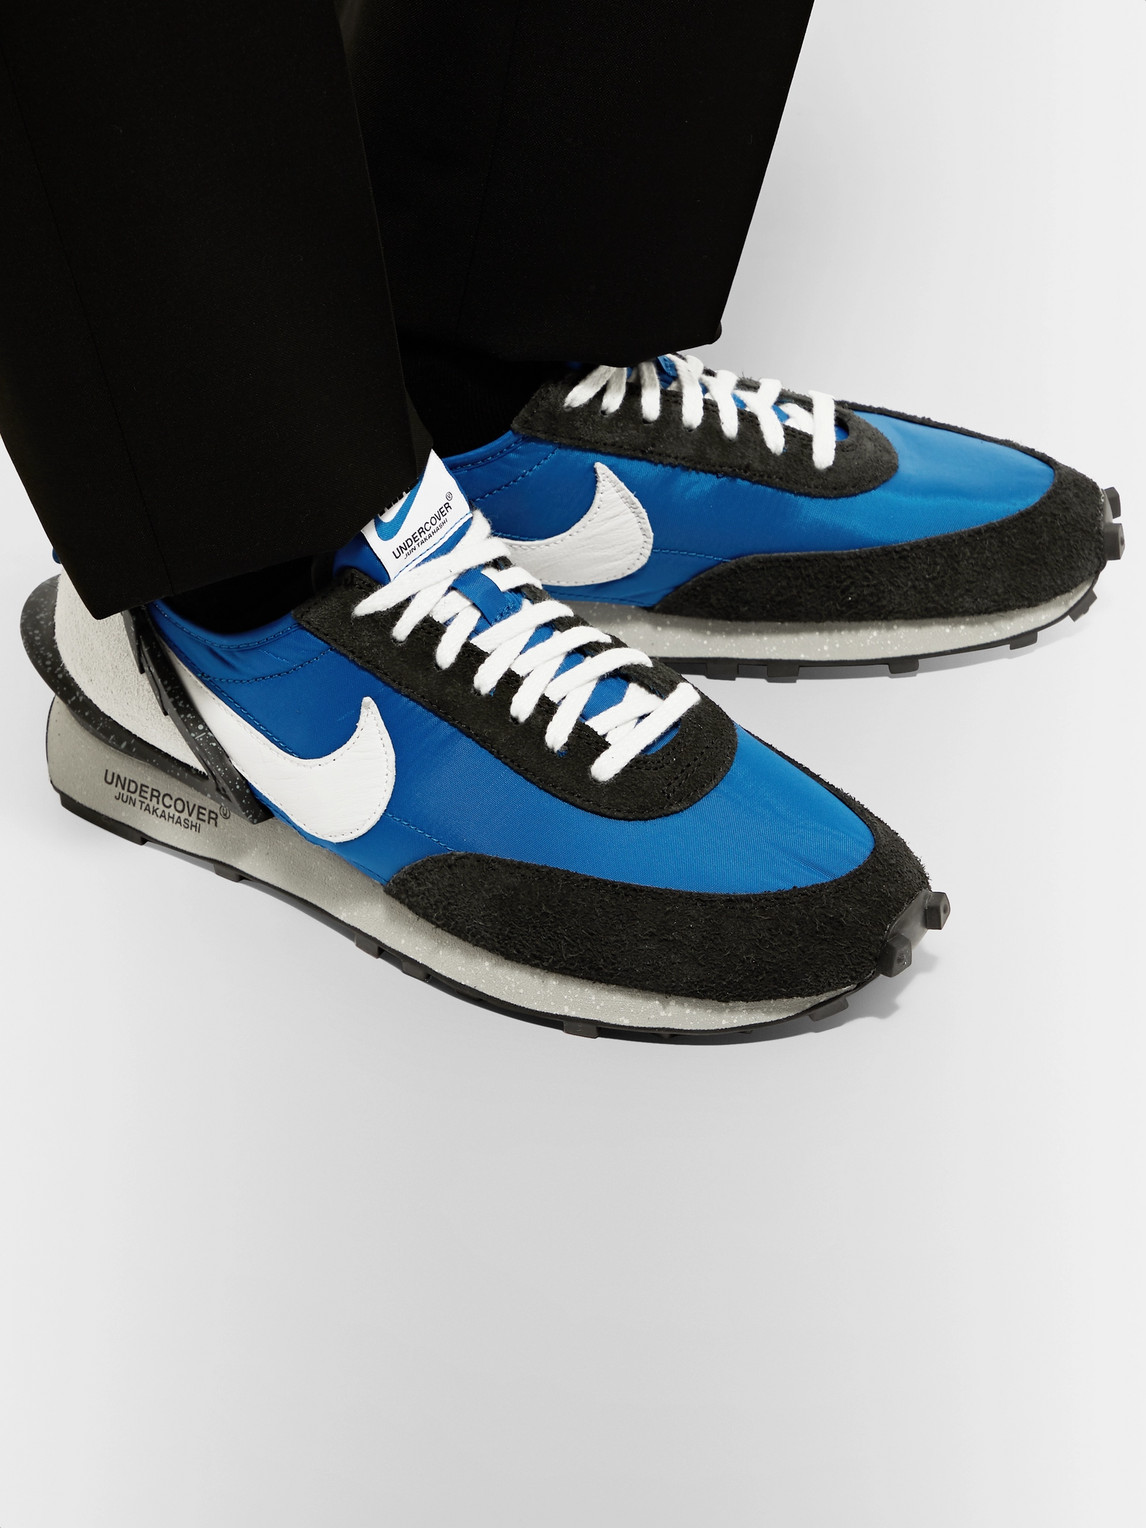 Nike Shoes UNDERCOVER DAYBREAK LEATHER